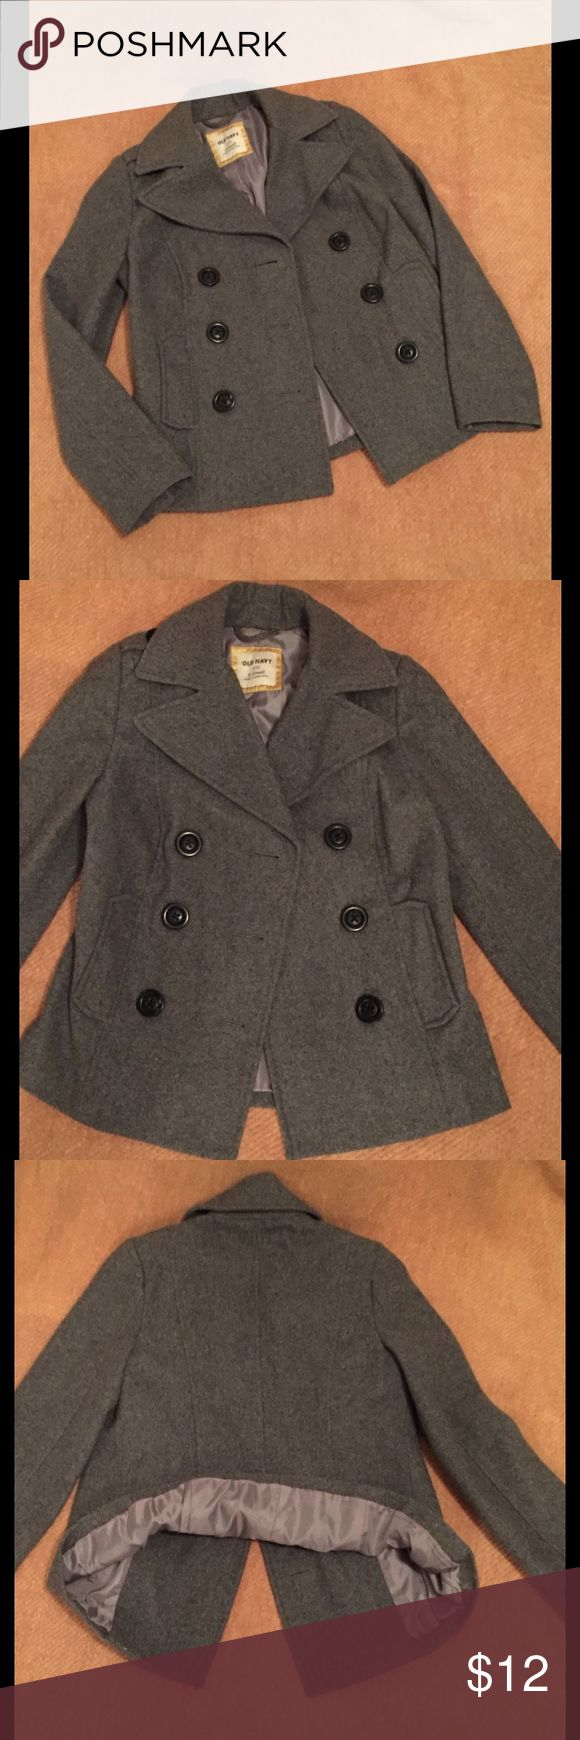 NWOT XS Gray Old Navy Pea Coat NWOT XS Gray Old Navy Pea Coat. Never Worn. Will easily fit a Size Small. New Condition. From a non-smoking and pet free home. BUNDLE2SAVE Old Navy Jackets & Coats Pea Coats